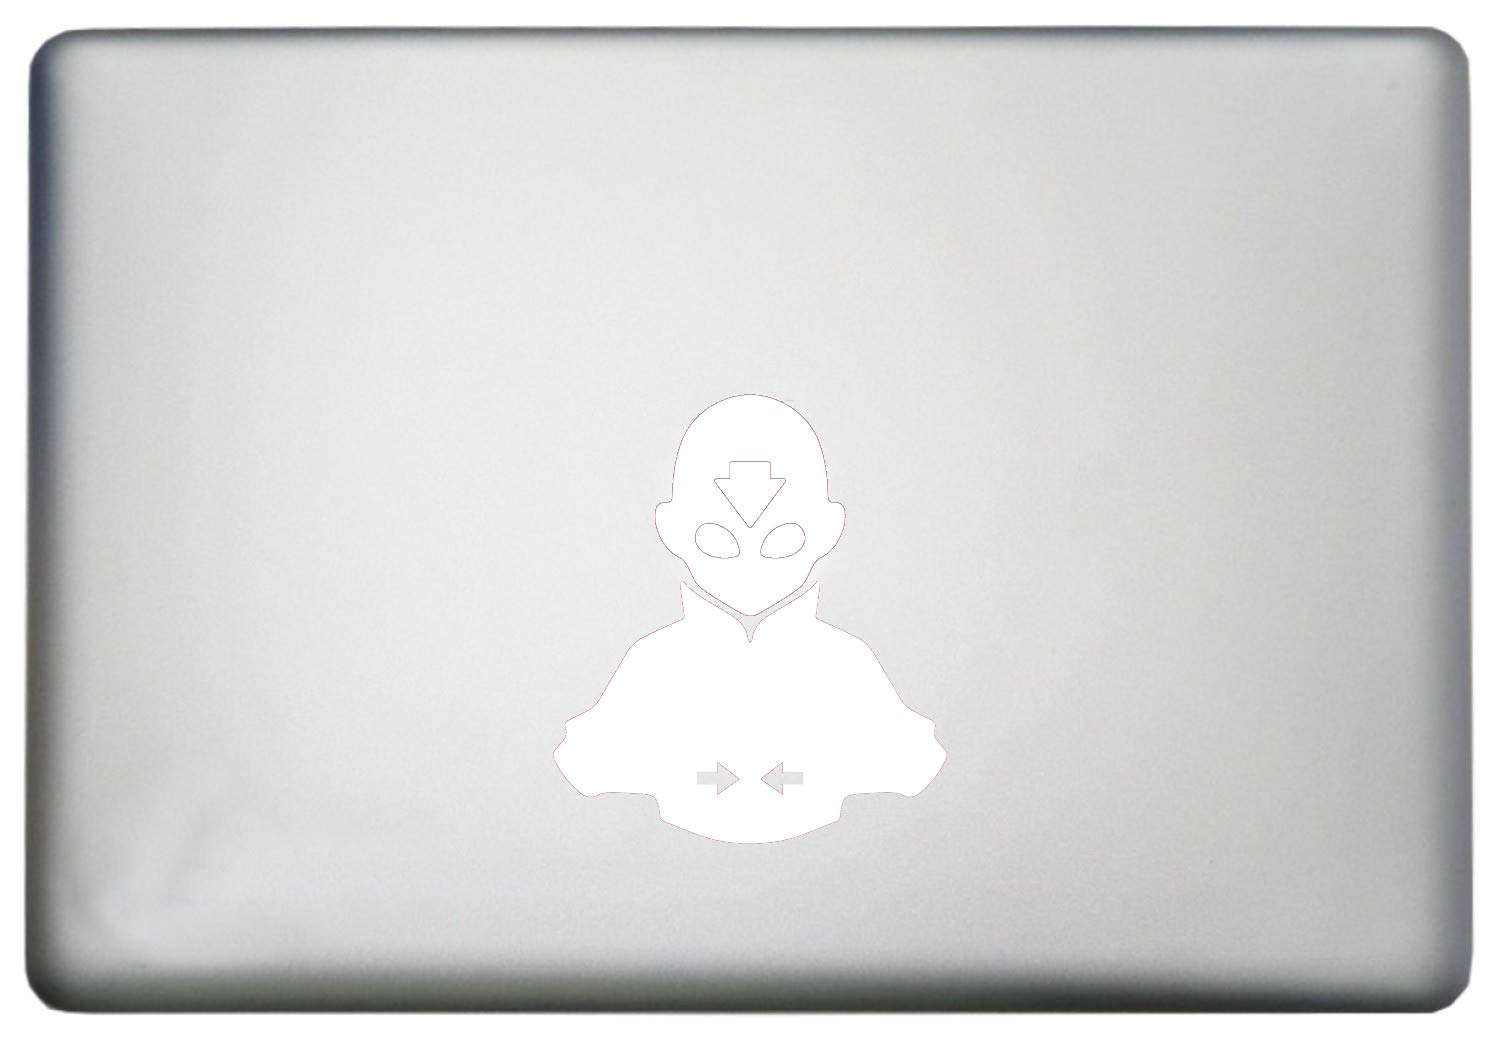 Avatar the last airbender mac book pro decal is a avatar decal available in 11 12 13 and 15 inch laptop sizes looks great with your avatar decals theme